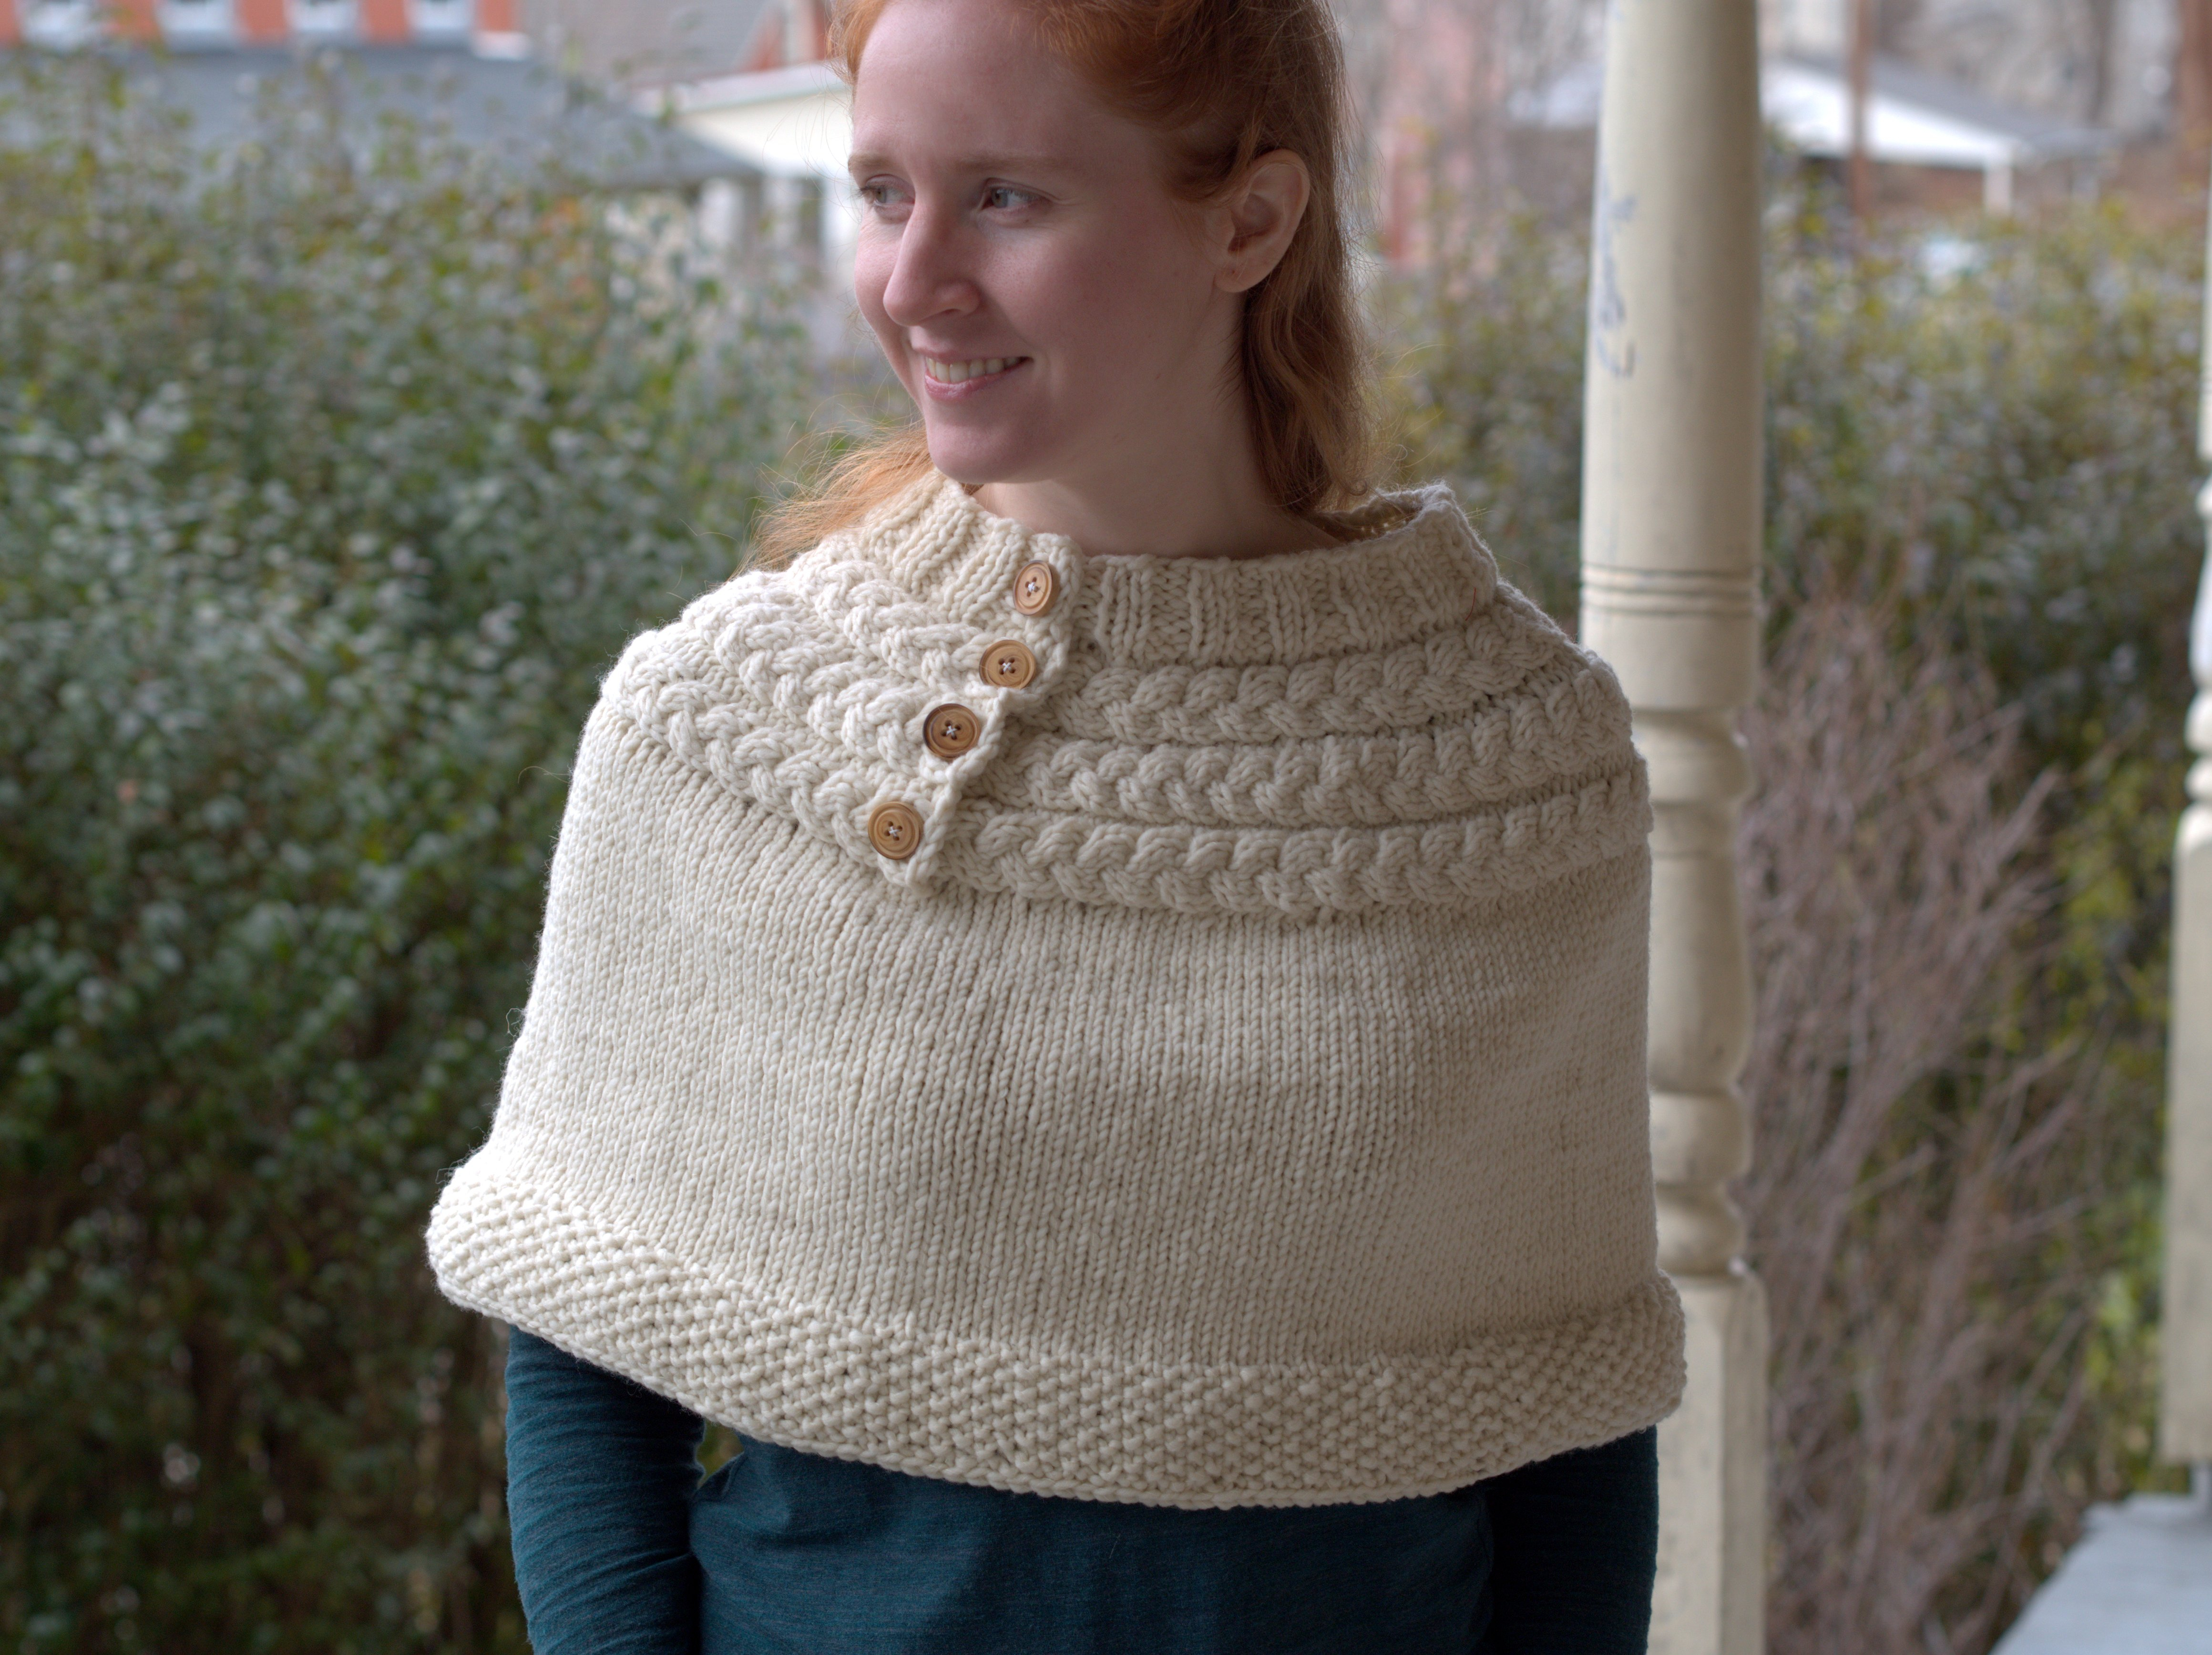 Free Knitting Patterns For Shrugs And Wraps Free Knitting Patterns Made In America Yarns